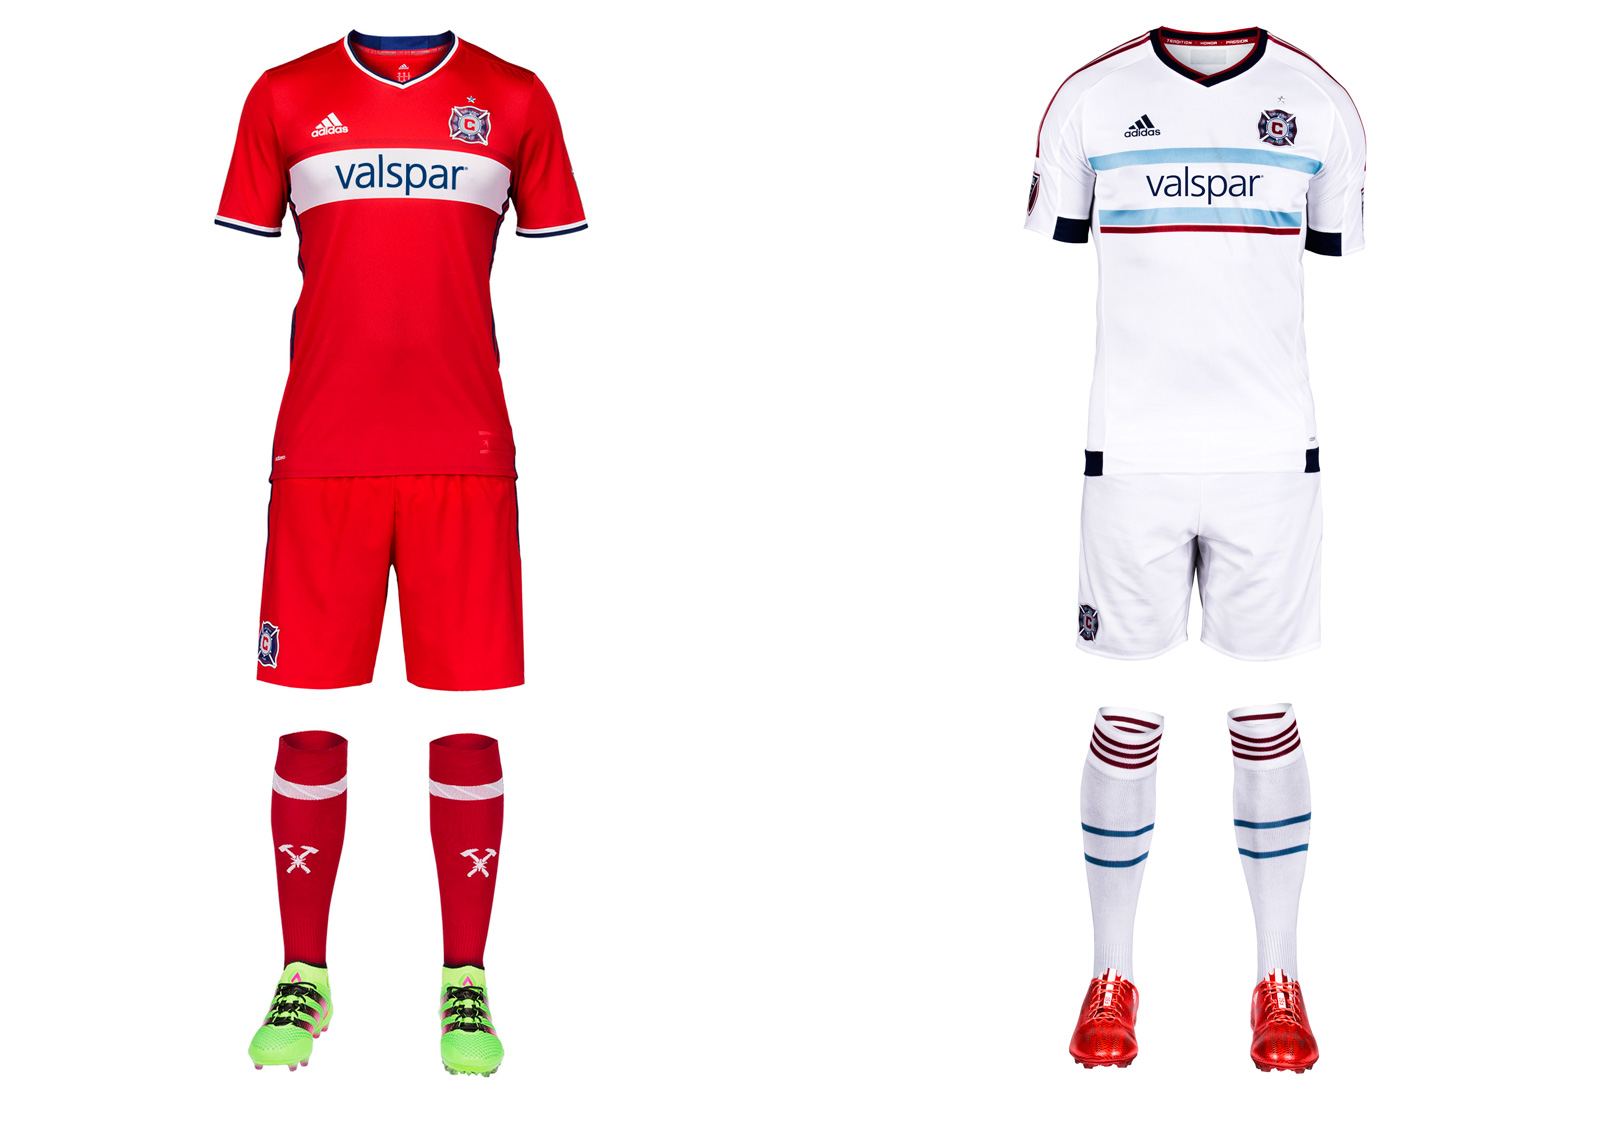 Chicago Fire 2016 uniforms